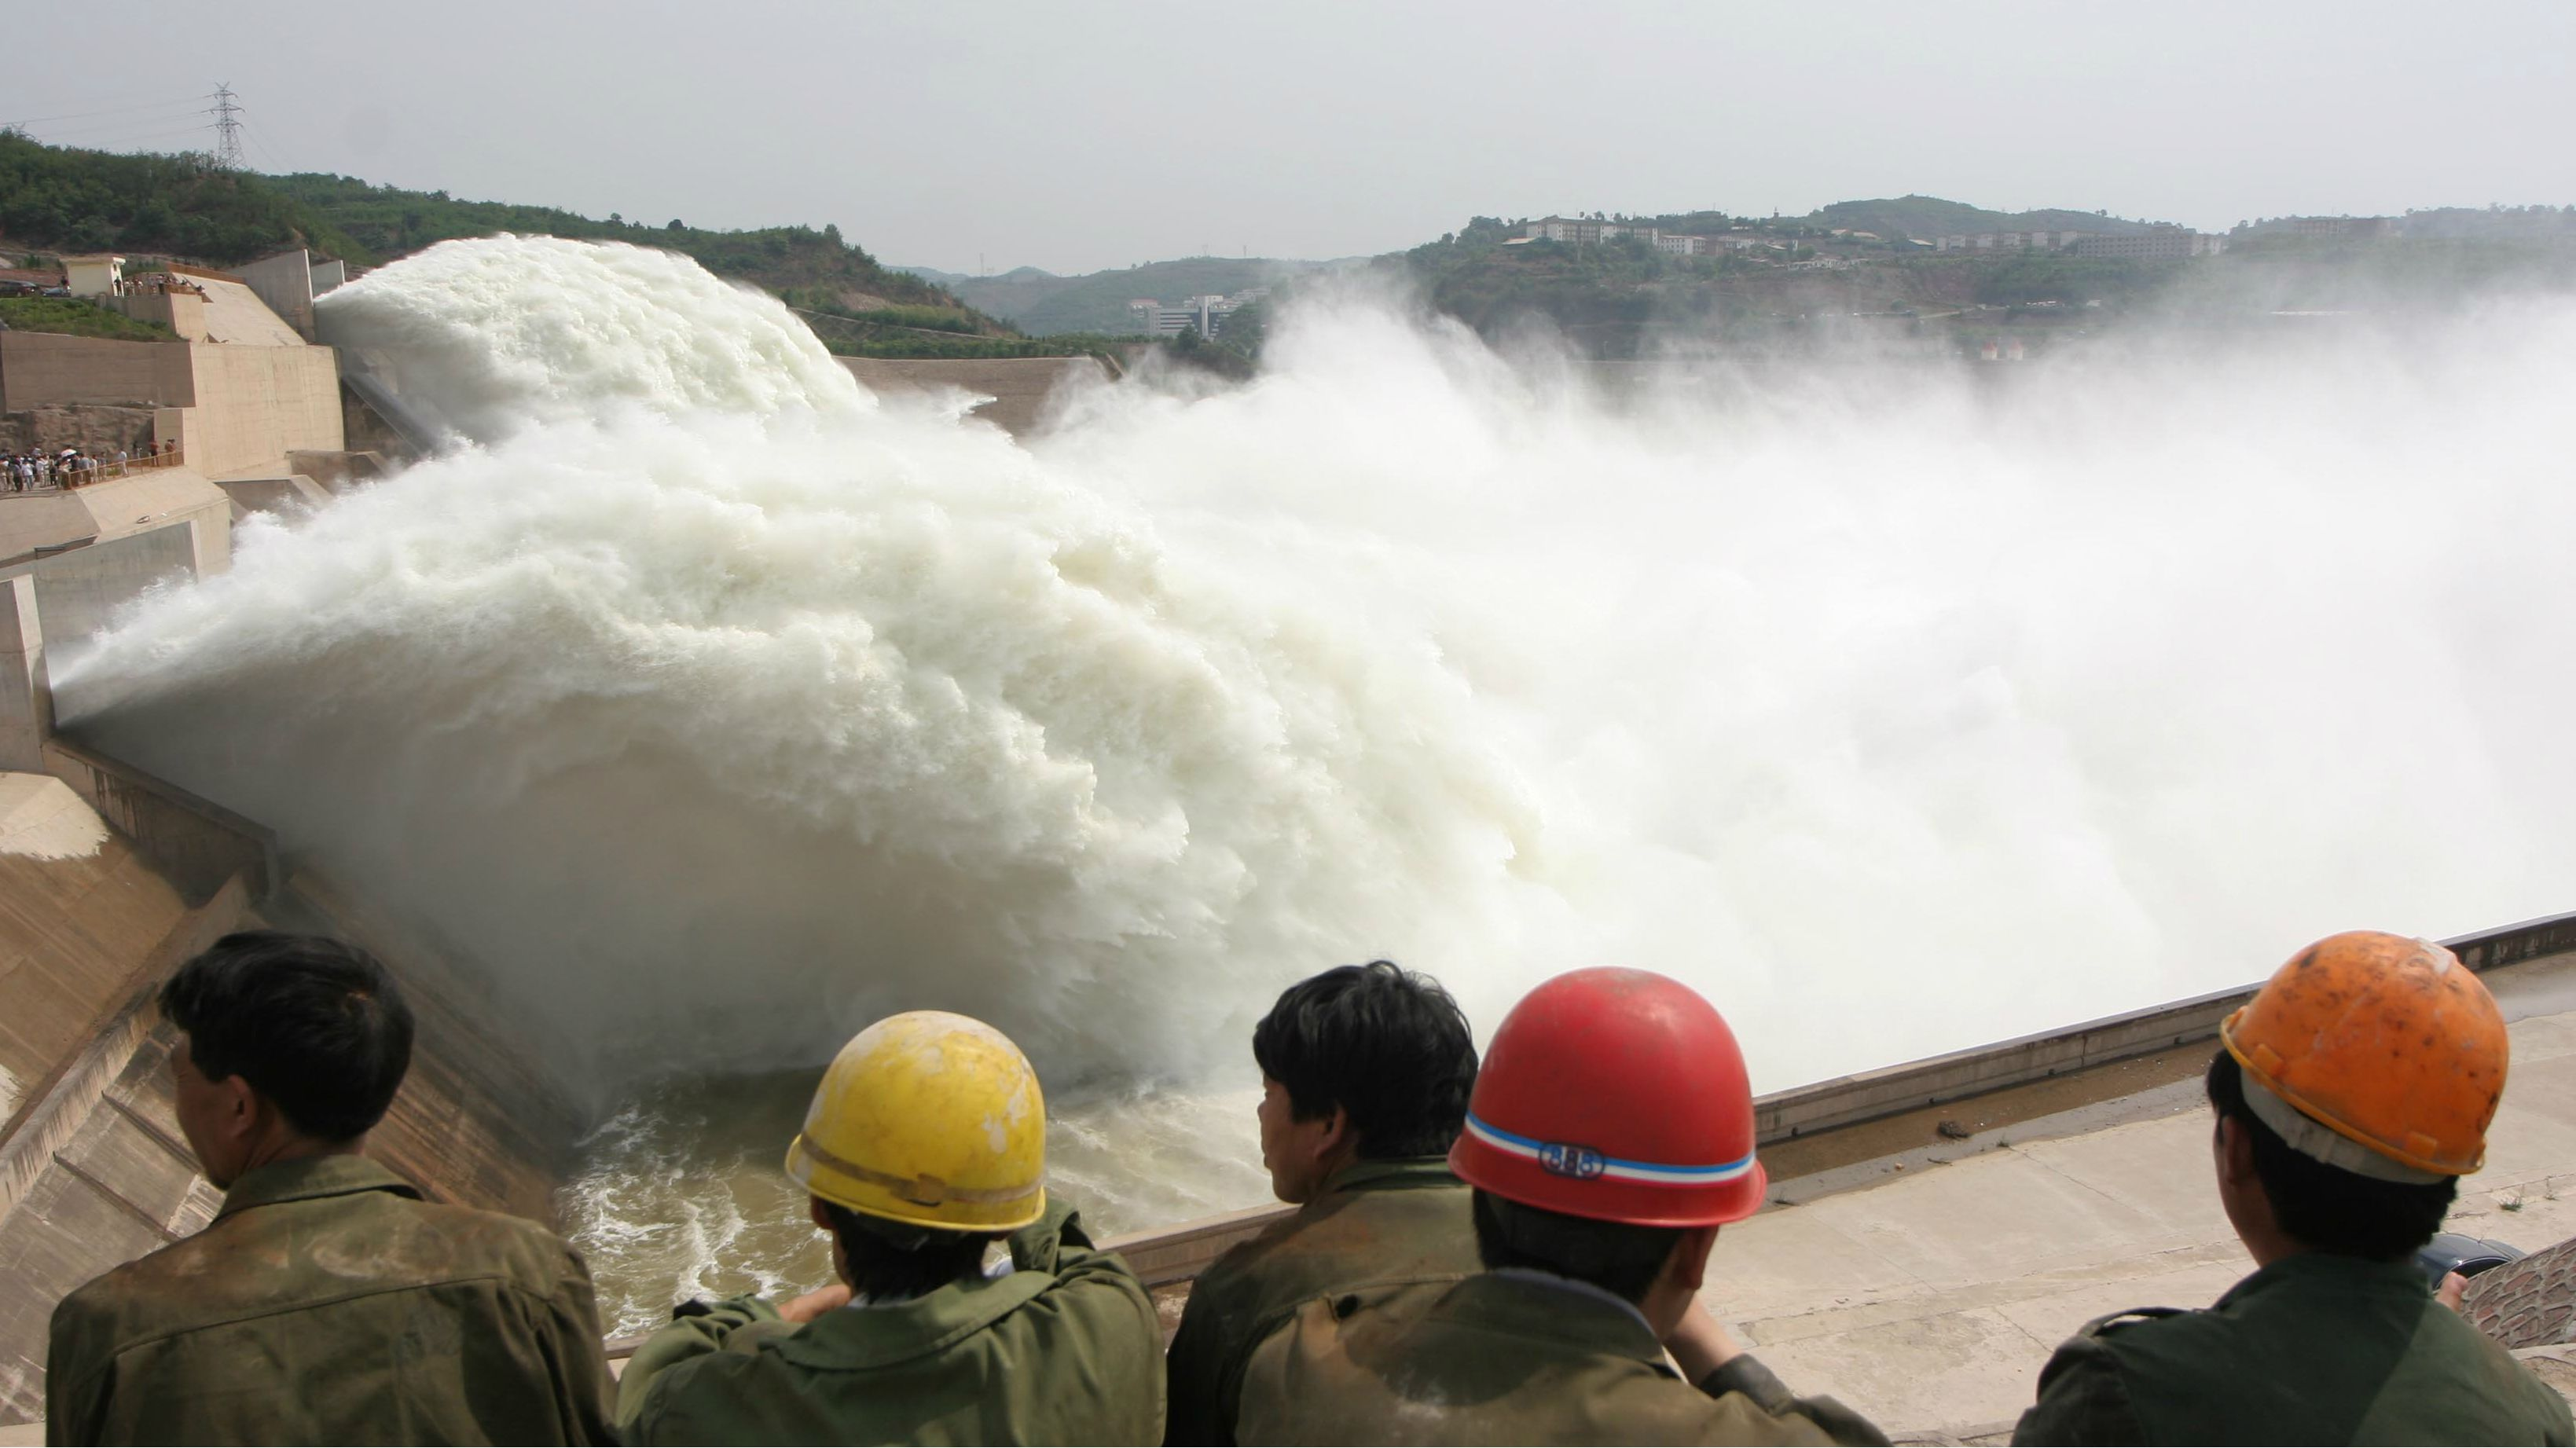 DATE IMPORTED:June 16, 2005Chinese residents look at water discharged from the Xiaolangdi Reservoir on the Yellow River June 16, 2005. About 2,900 cubic meters per second of water will gush out of the reservoir in the next 15-20 days to wash the sands in the riverbed into the sea. The water level in the reservoir is then expected to drop 27 meters (29.5 yards) to prepare in advance for possible flooding. CHINA OUT REUTERS/China Newsphoto